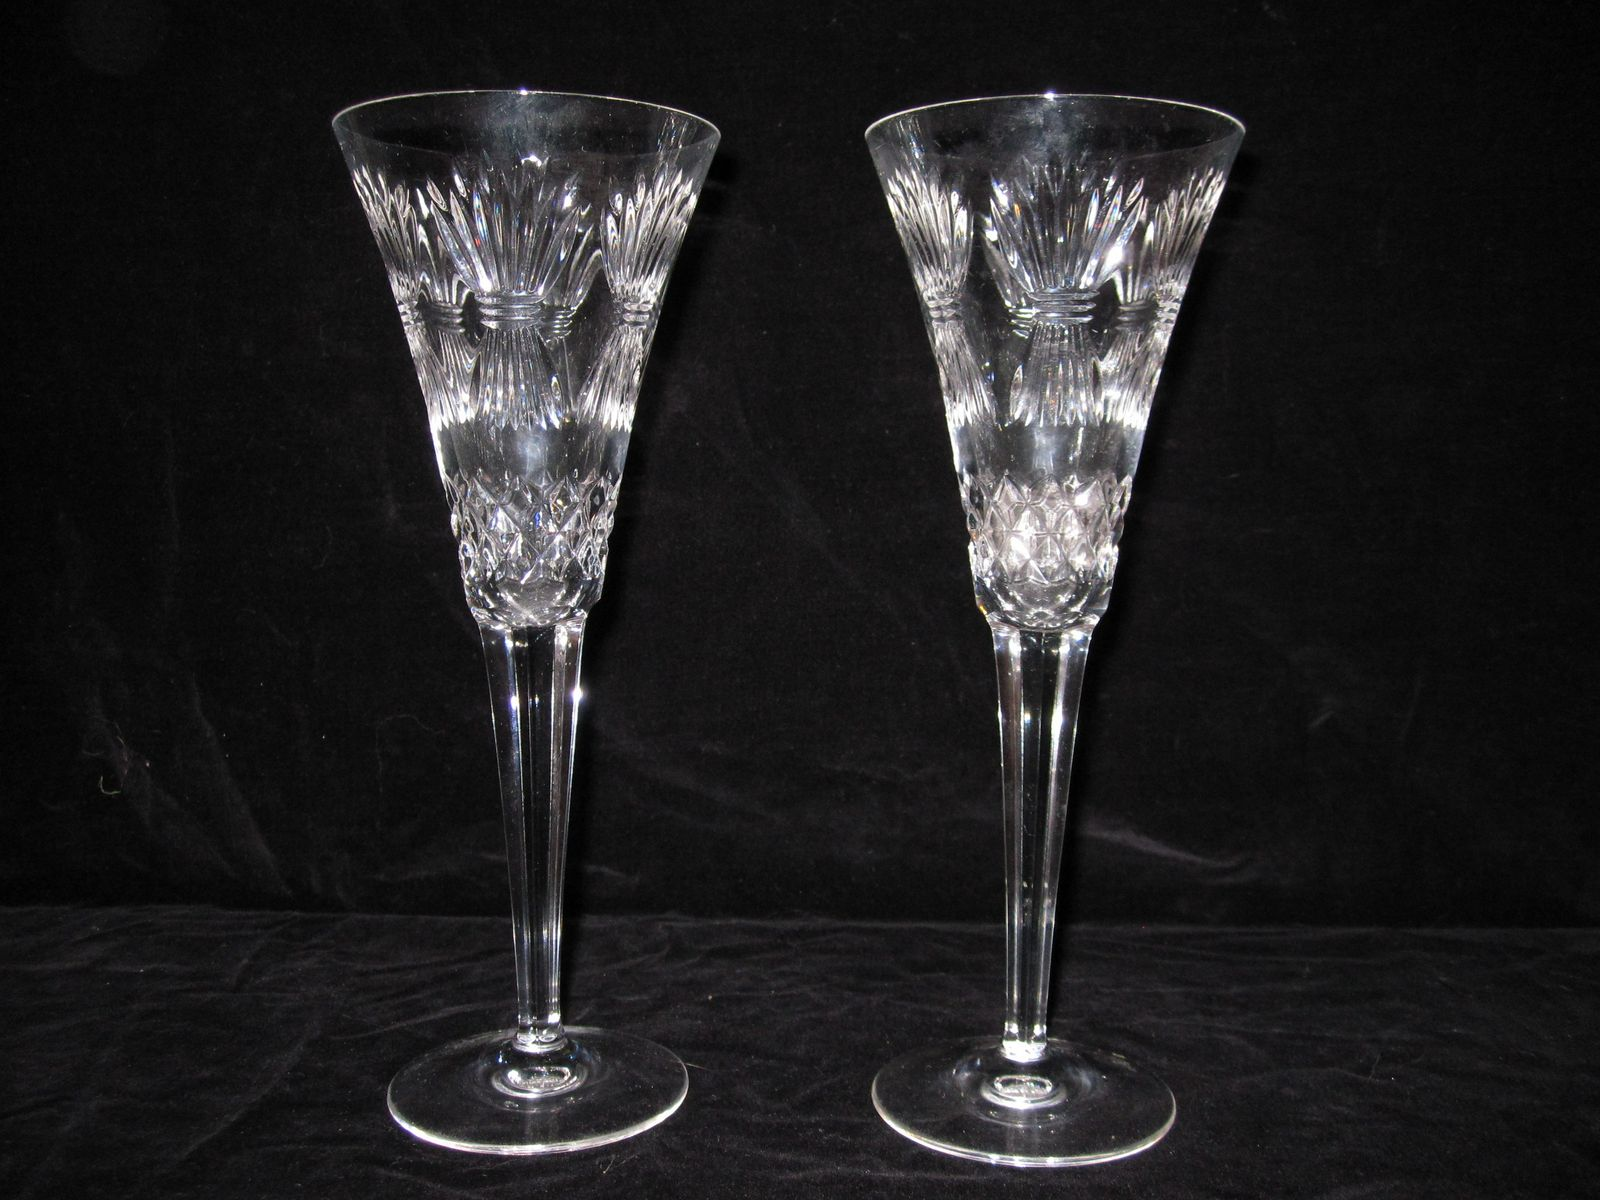 Cozy waterford crystal patterns for dining furniture ideas with waterford crystal glass patterns